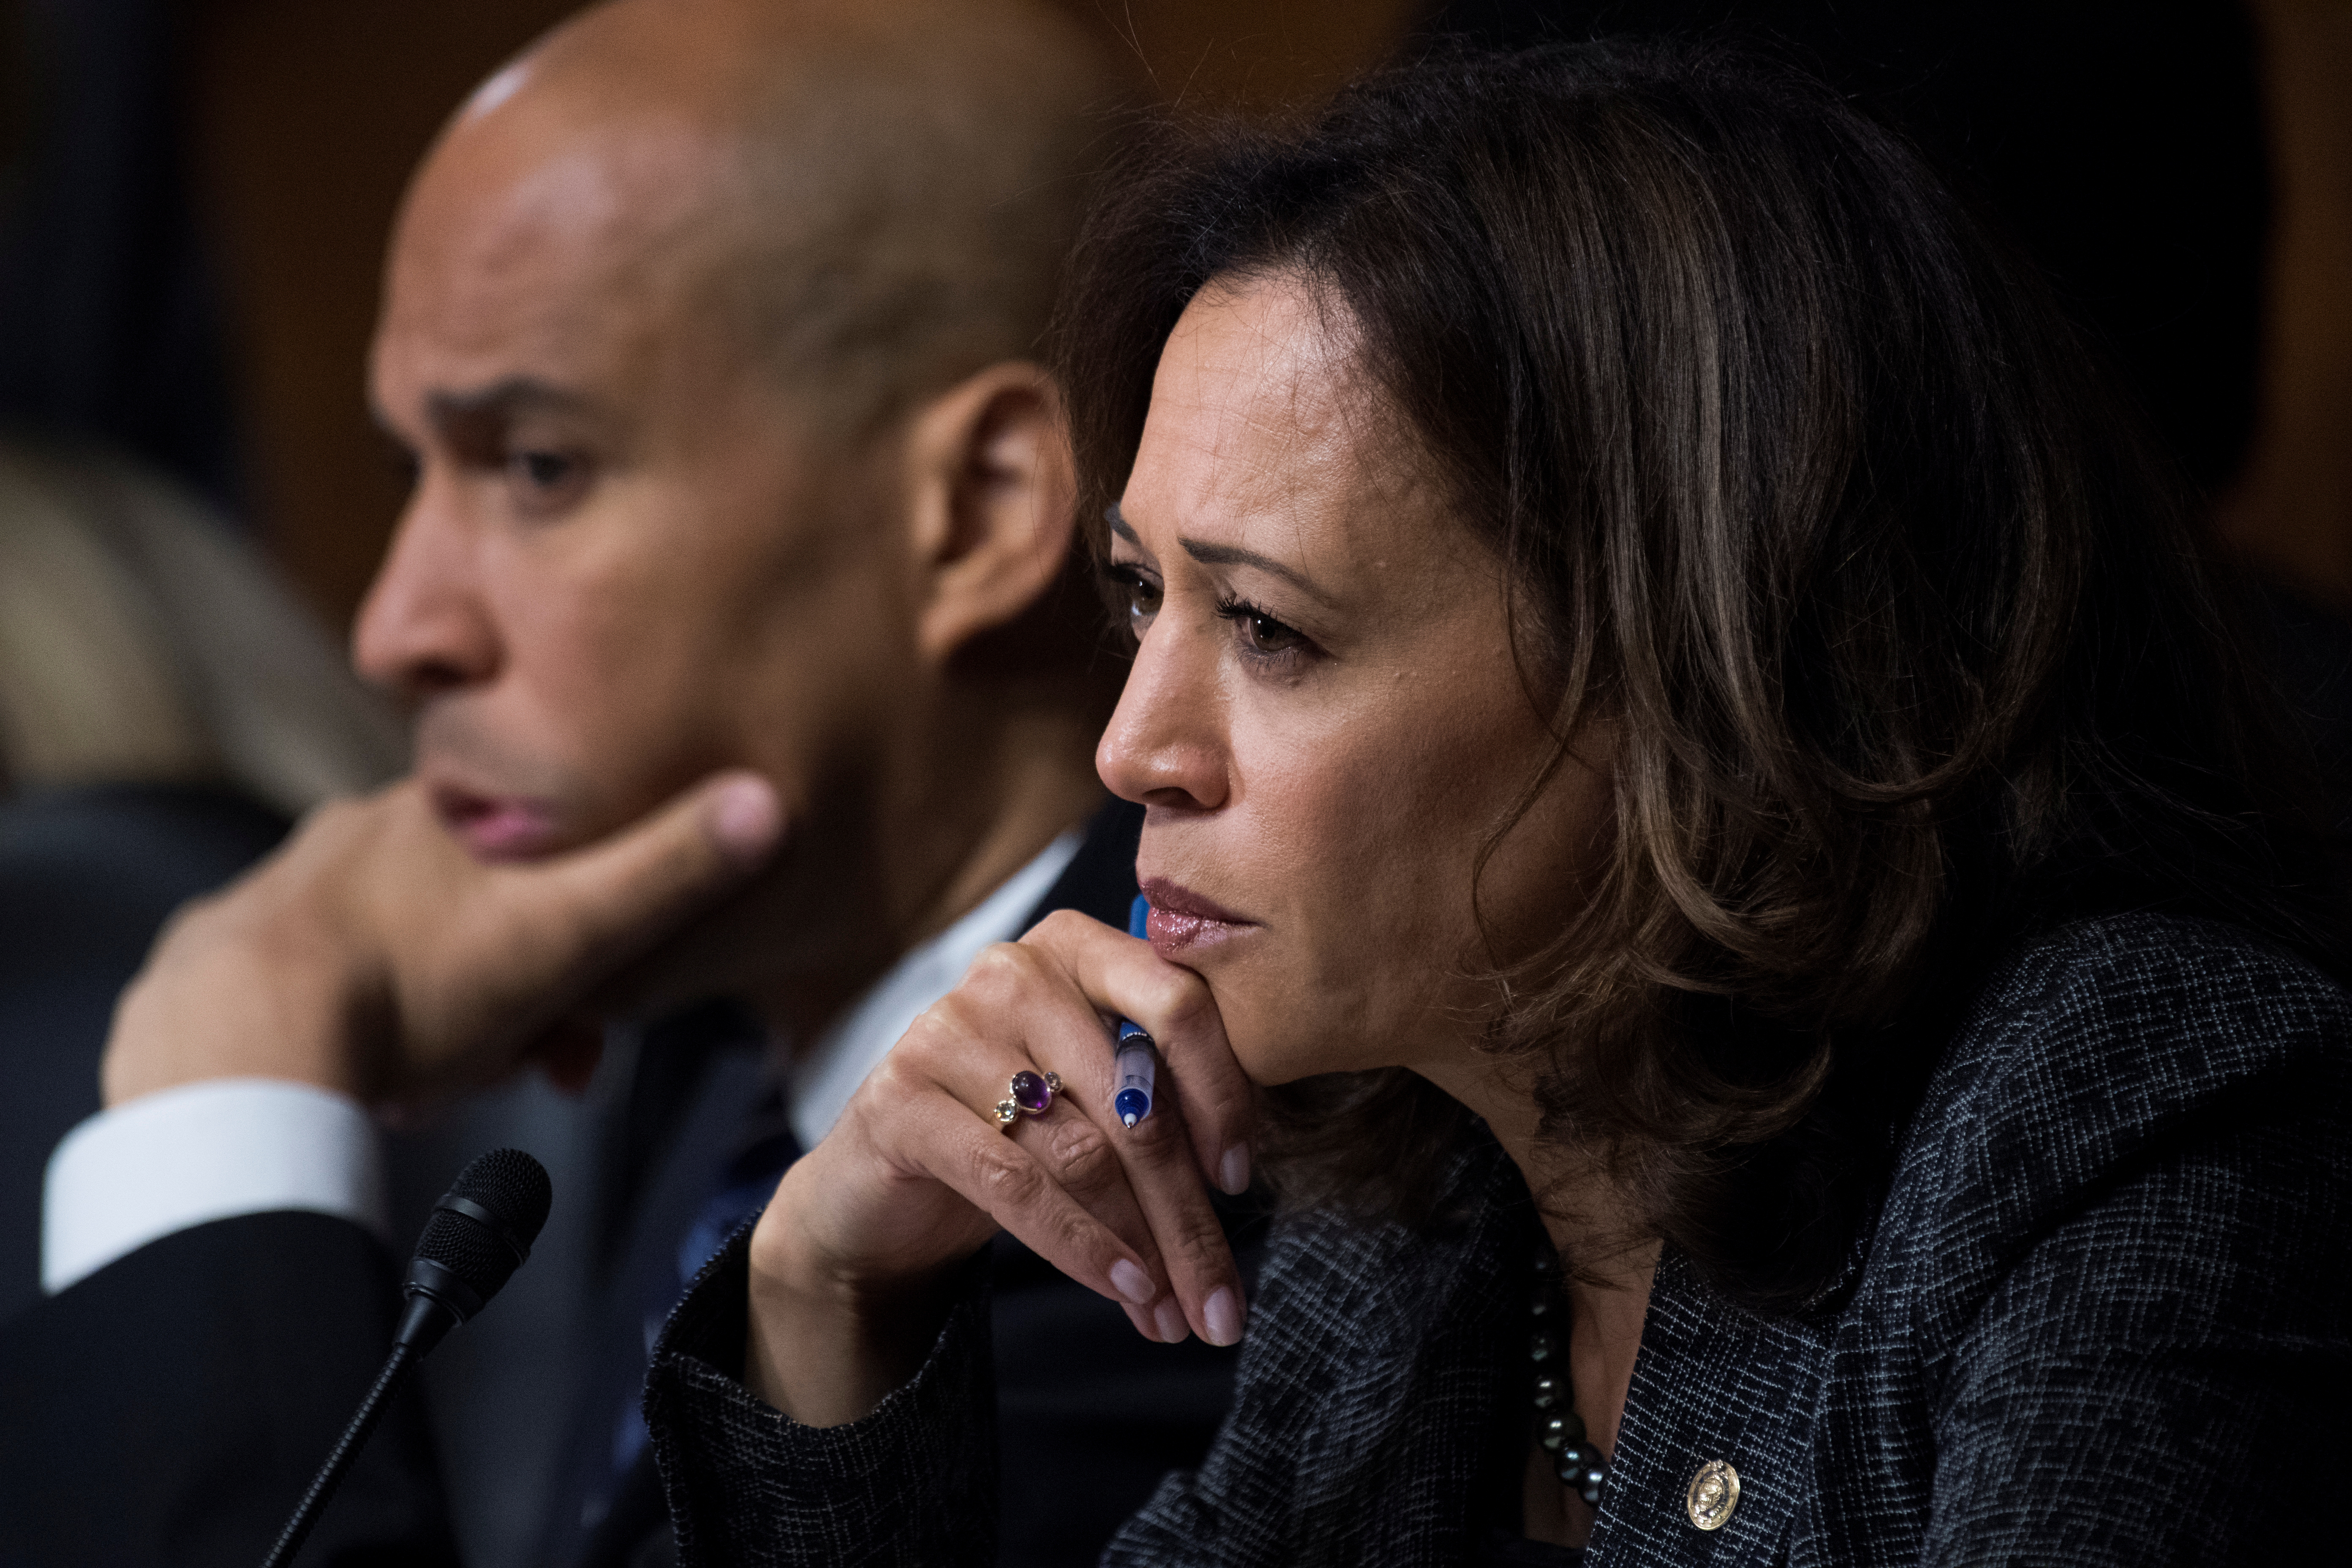 Sen. Cory Booker, D-N.J., and Sen. Kamala Harris, D-Calif., listen as Dr. Christine Blasey Ford testifies during the Senate Judiciary Committee hearing on the nomination of Brett M. Kavanaugh to be an associate justice of the Supreme Court of the United States, focusing on allegations of sexual assault by Kavanaugh against Christine Blasey Ford in the early 1980s, in Washington, DC, U.S., September 27, 2018. Tom Williams/Pool via REUTERS